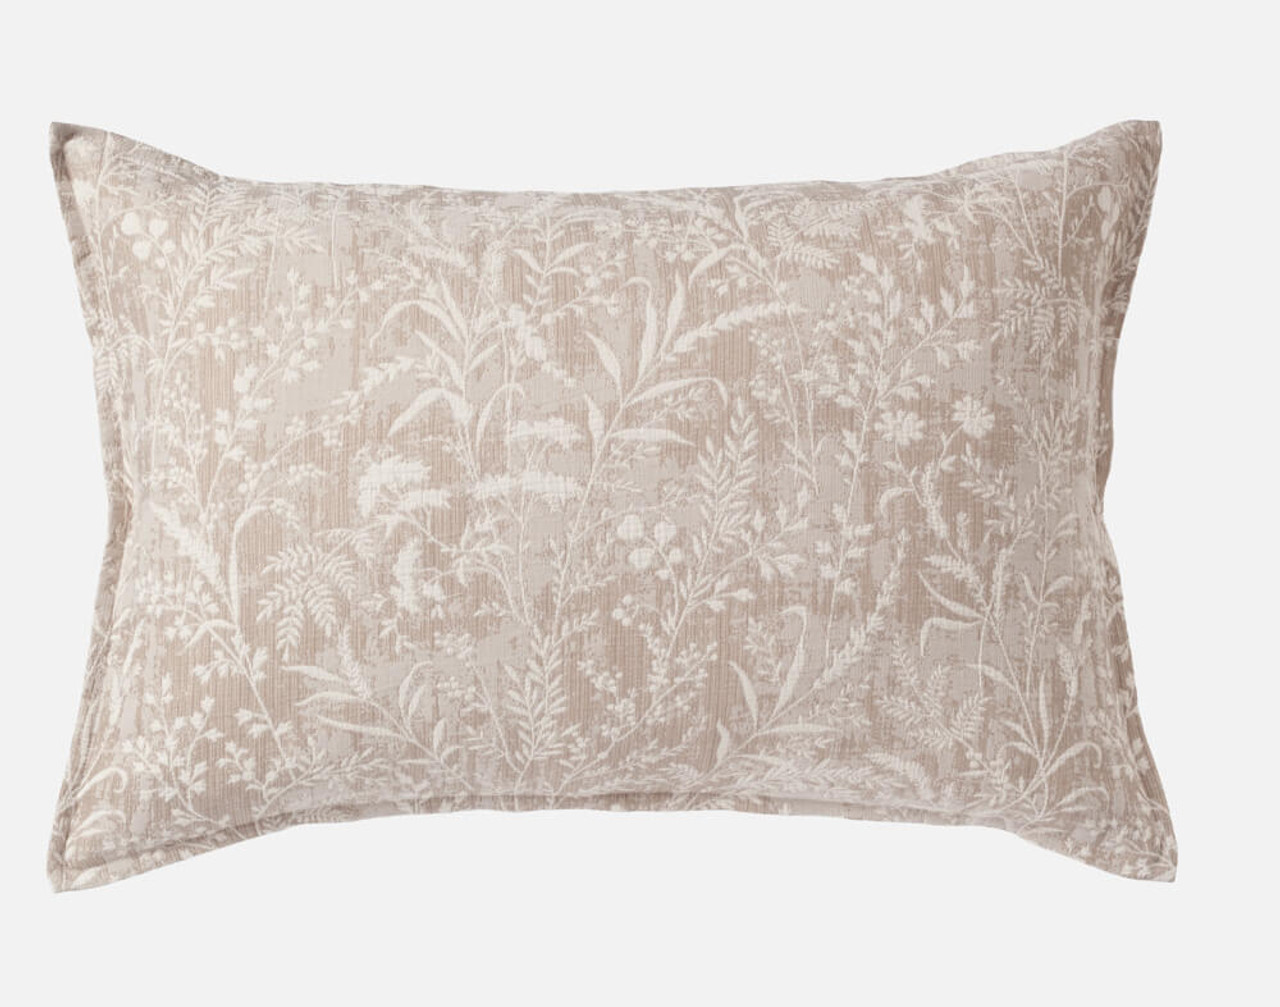 Meadowsweet Pillow Sham in shades of taupe and cream.